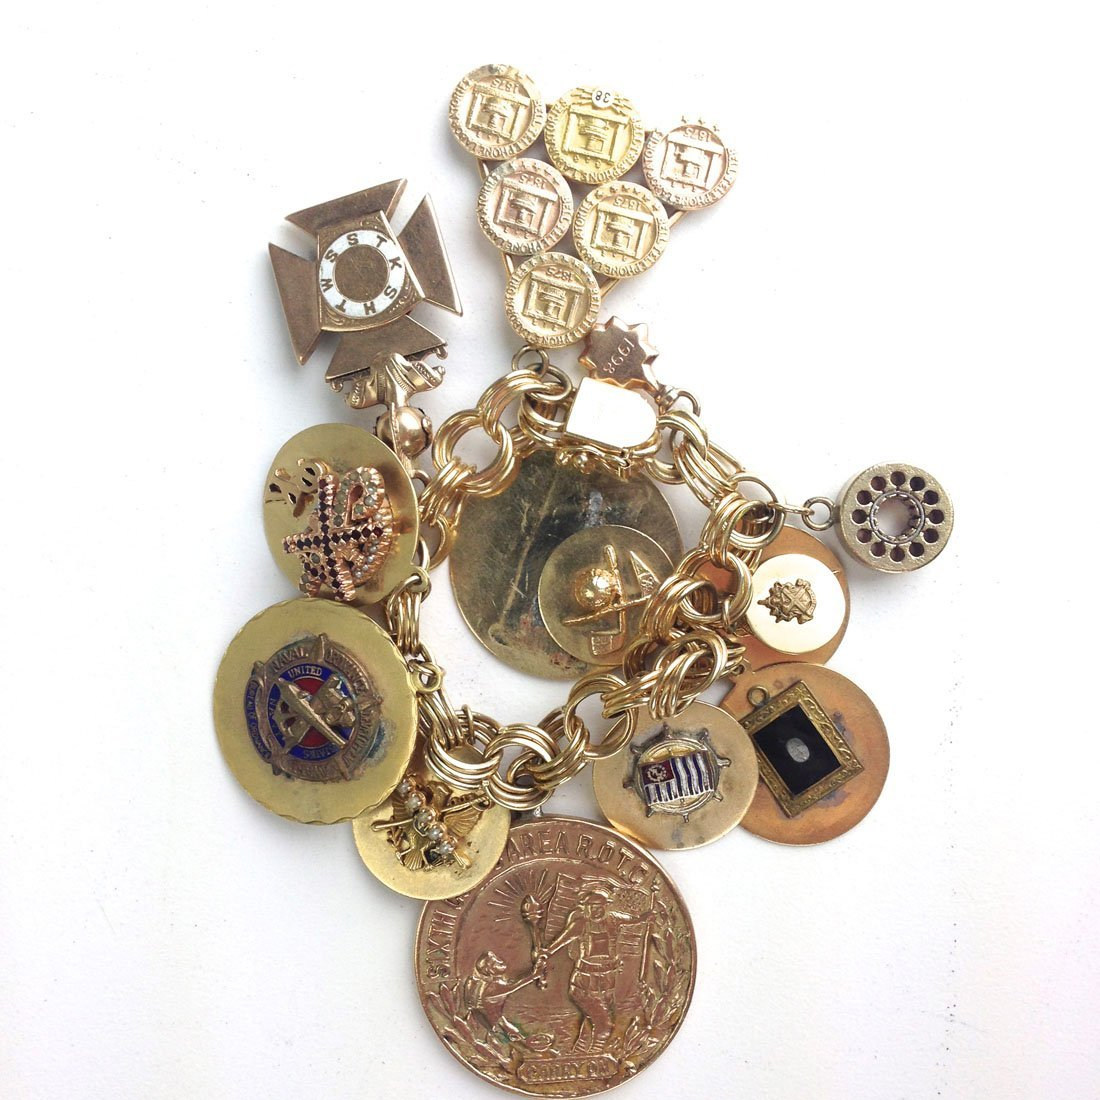 14k yellow gold charm bracelet with various 14 various